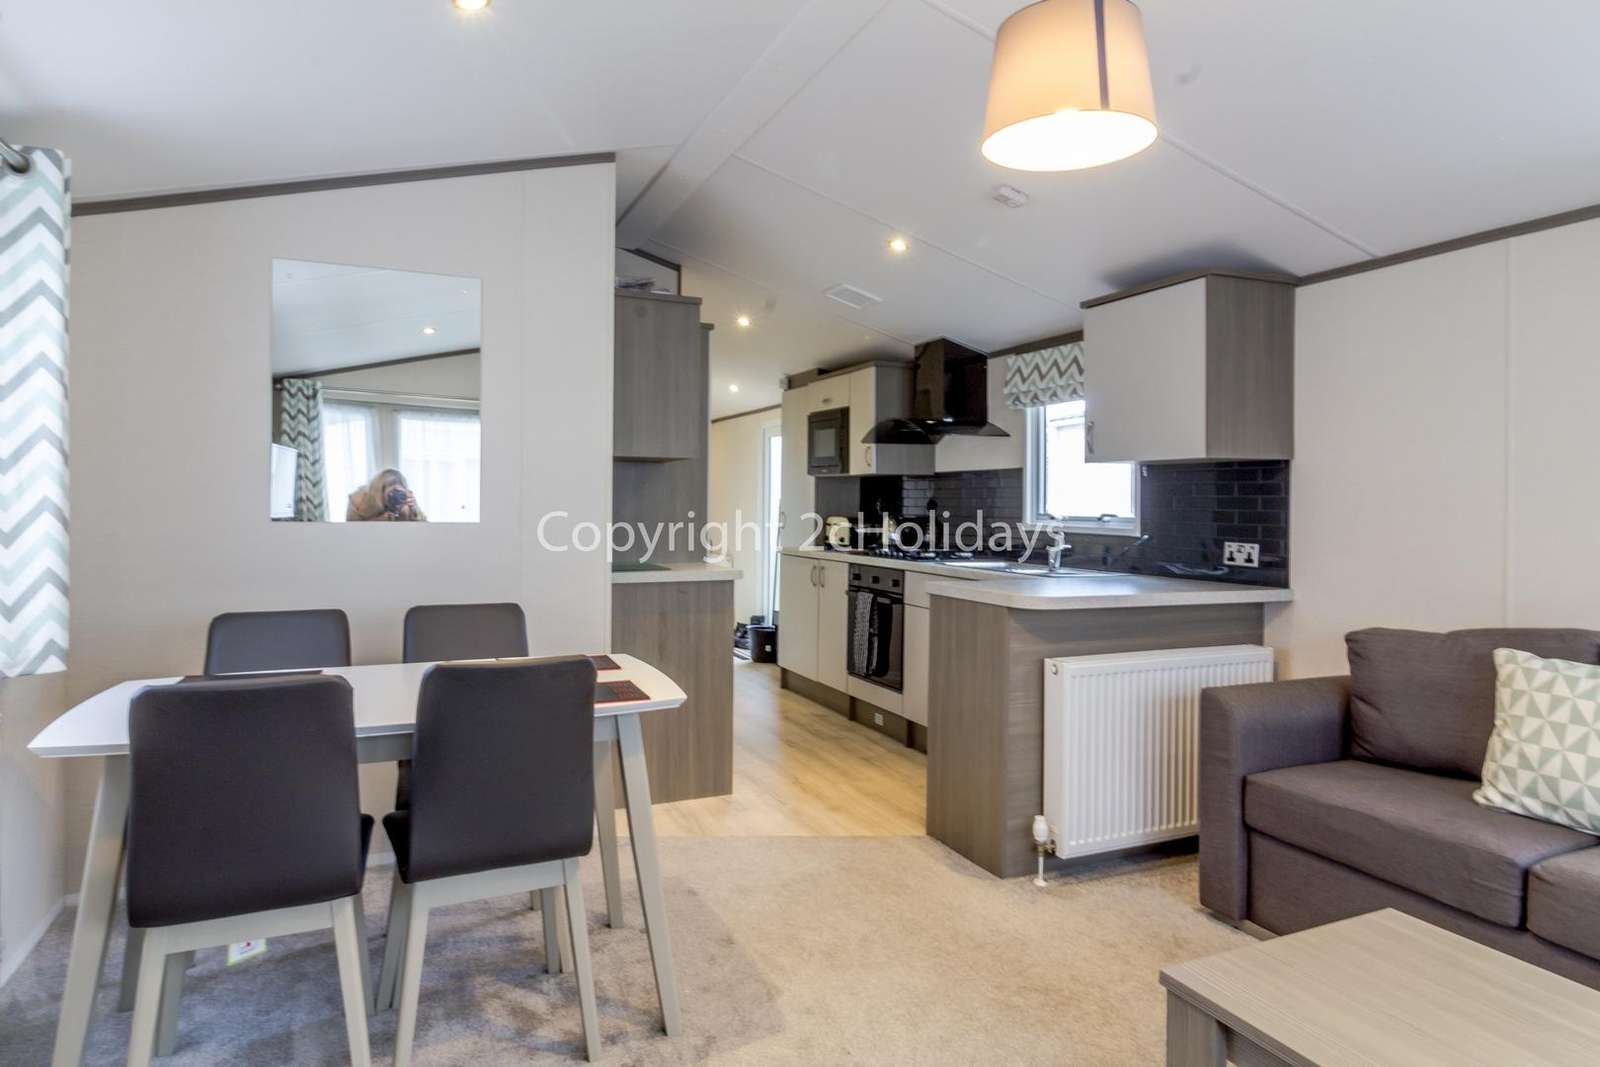 Open plan kitchen, dining area and lounge, great for families